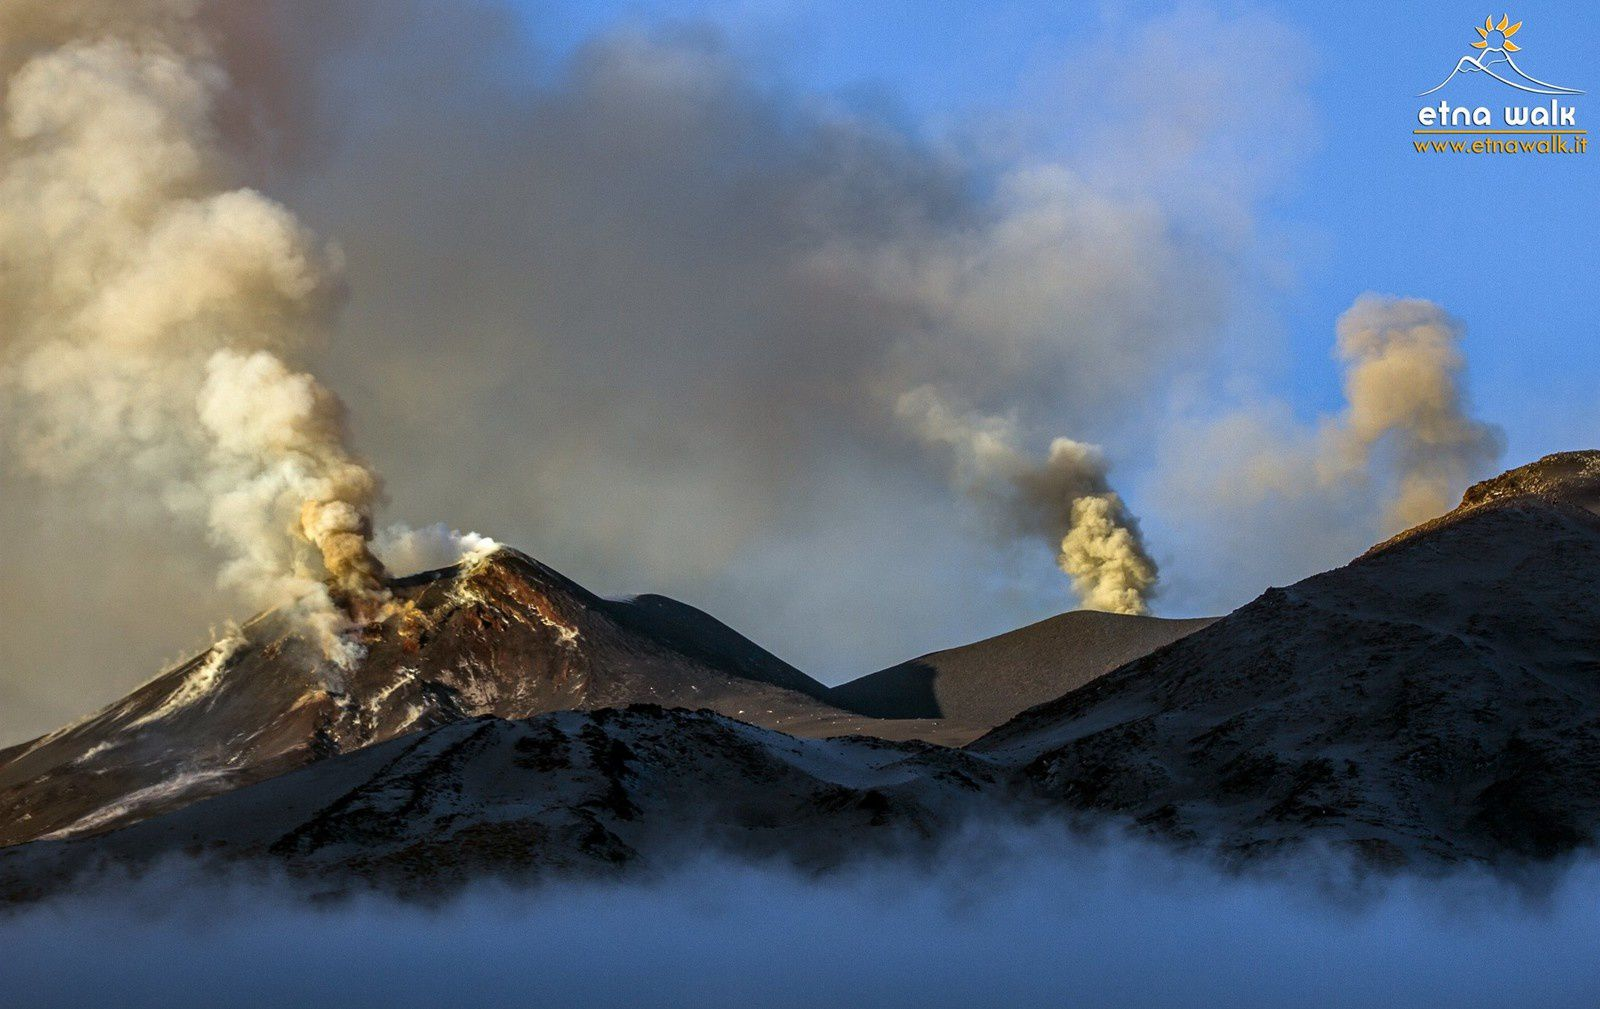 Etna - from left to right, the SE crater, that of Voragine and NE crater - photo Giuseppe Distefano / EtnaWalk